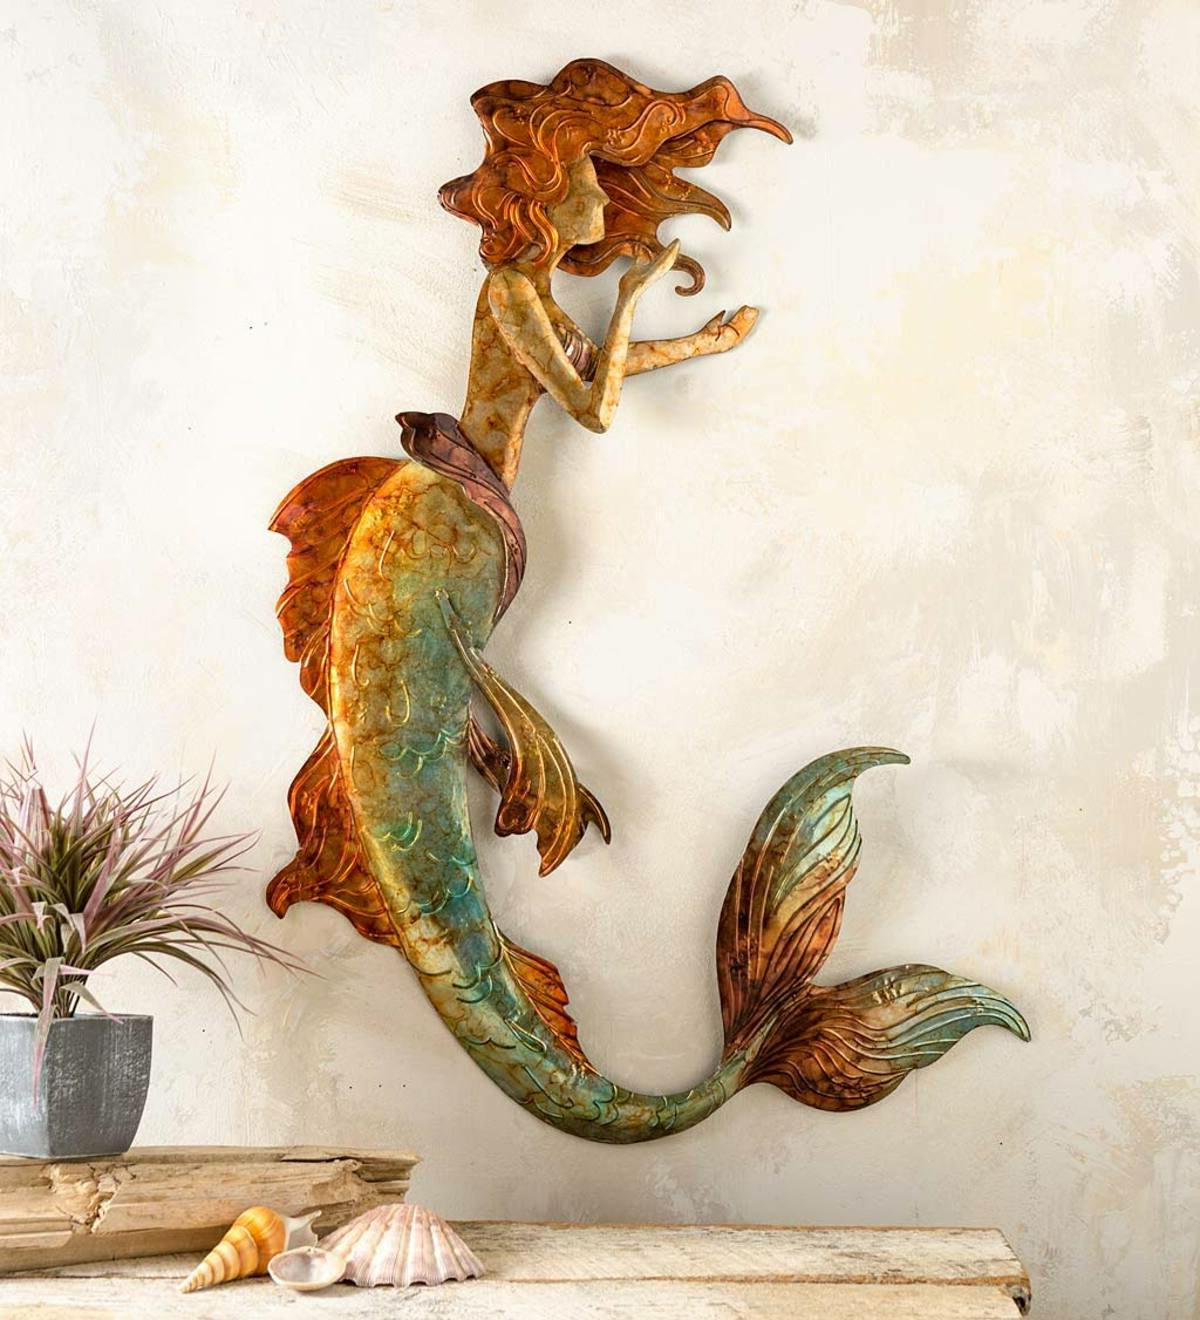 Handcrafted Metal Mermaid Wall Décor For 2020 Handcrafted Metal Wall Décor (View 16 of 20)